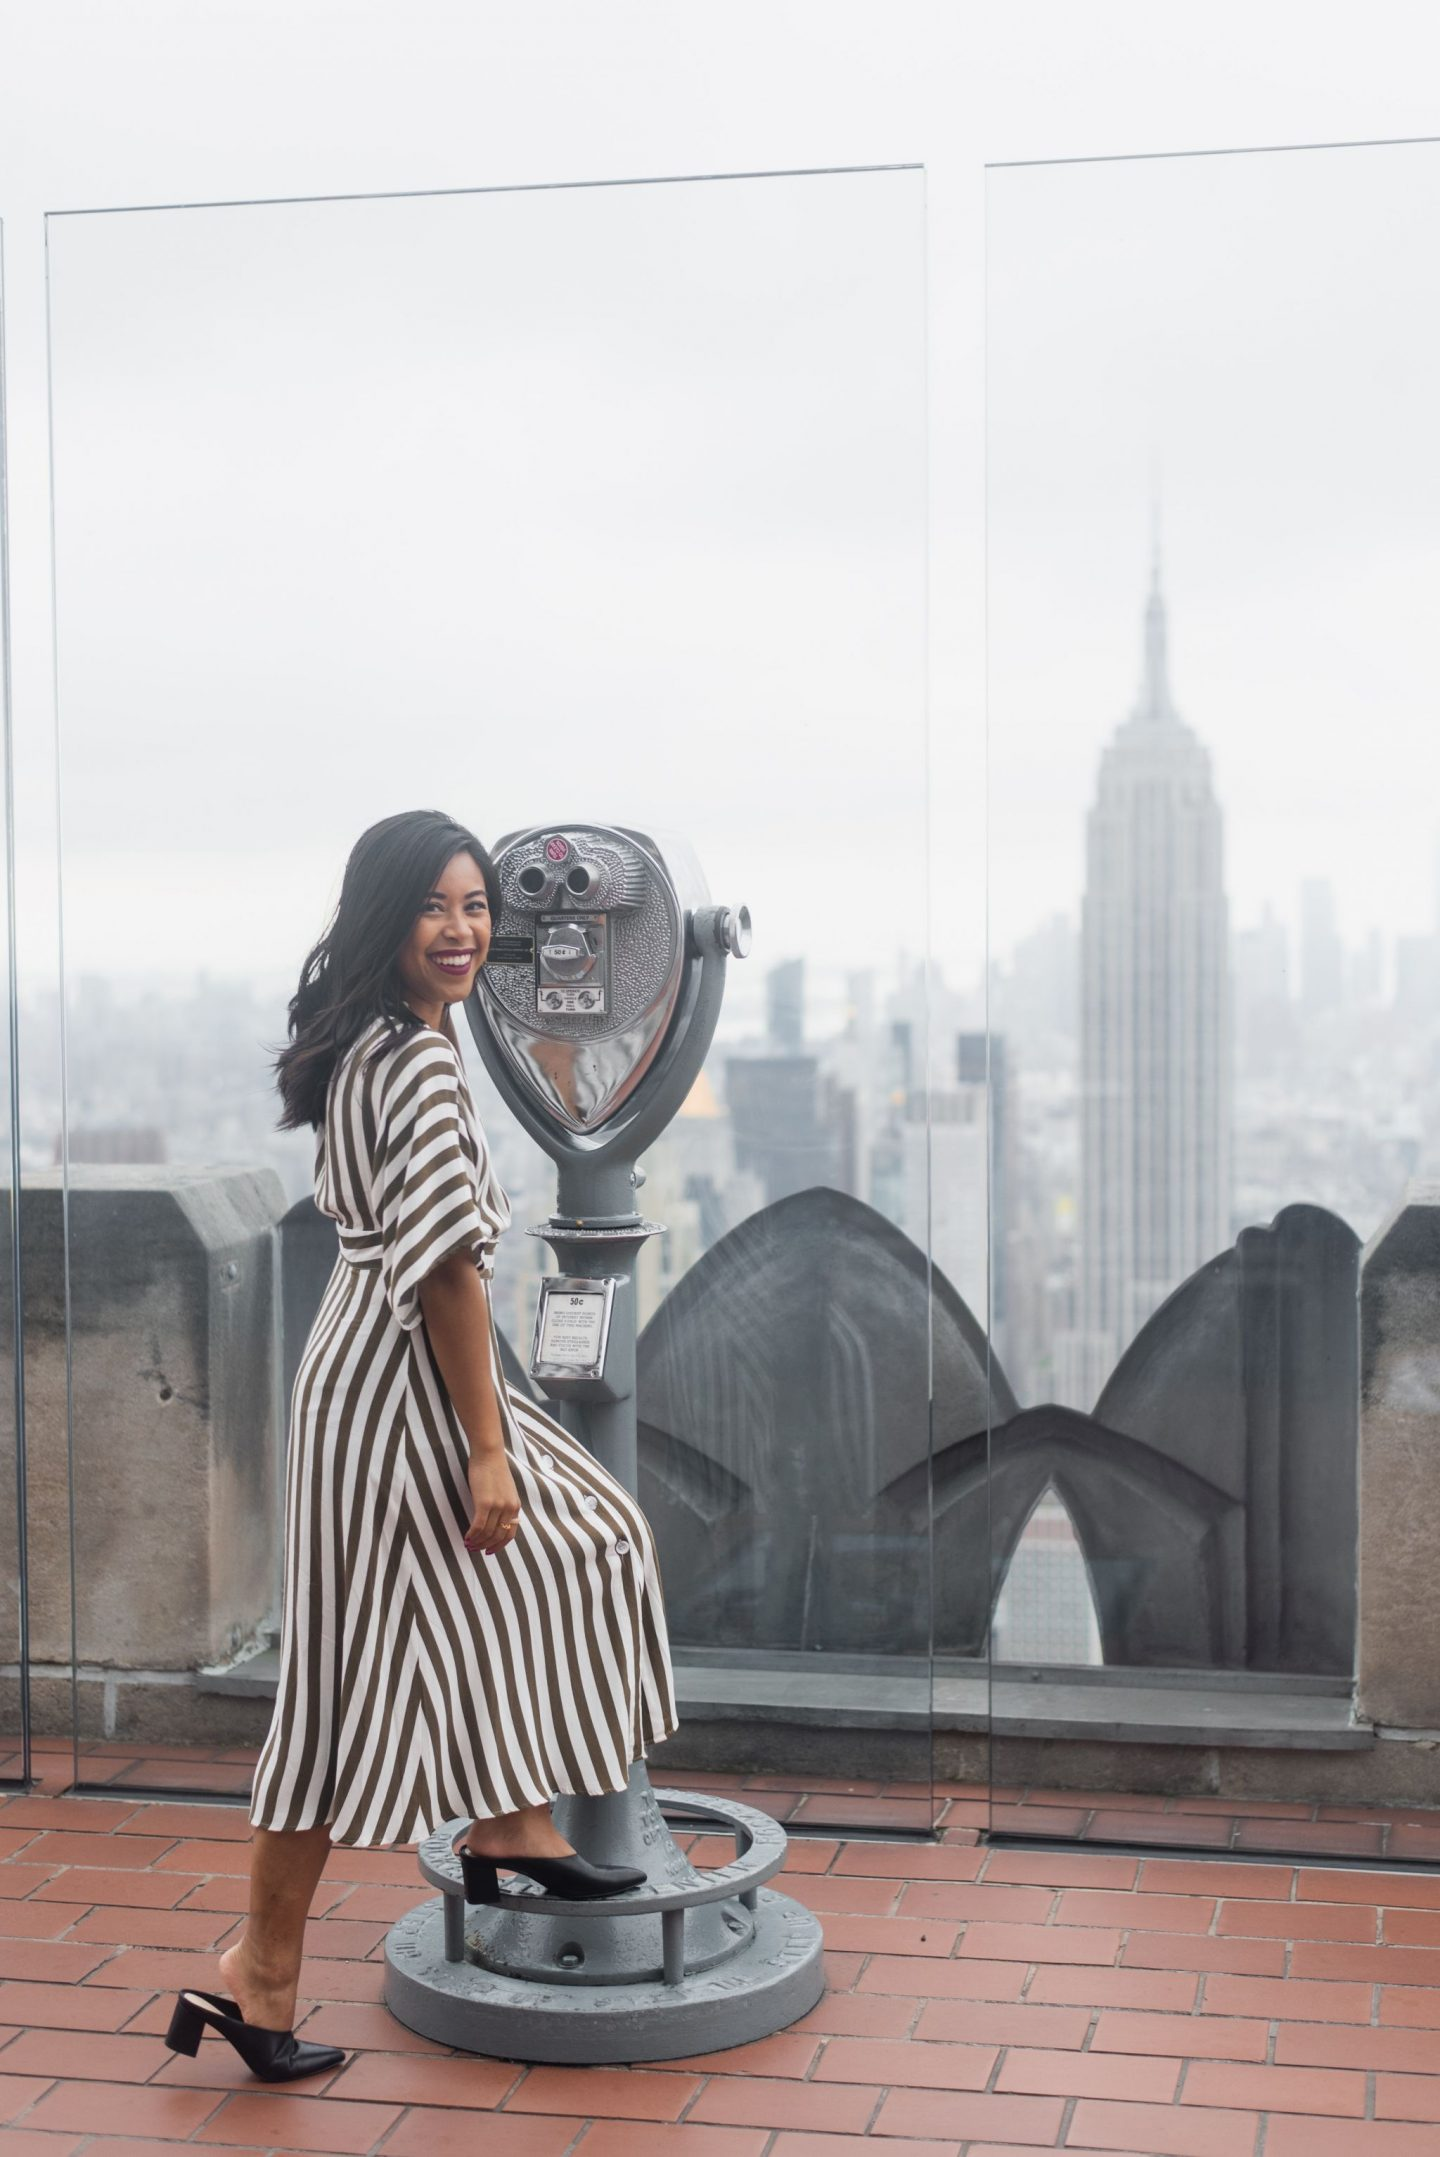 Behind the Scenes of NYFW – behind the scenes of new York fashion week – tips for going to new York fashion week – NYFW – new York fashion week 2019 – new York fashion week tickets – visit New York – Top of the Rock – Rockefeller Center – Visit New York – Things to see in New York